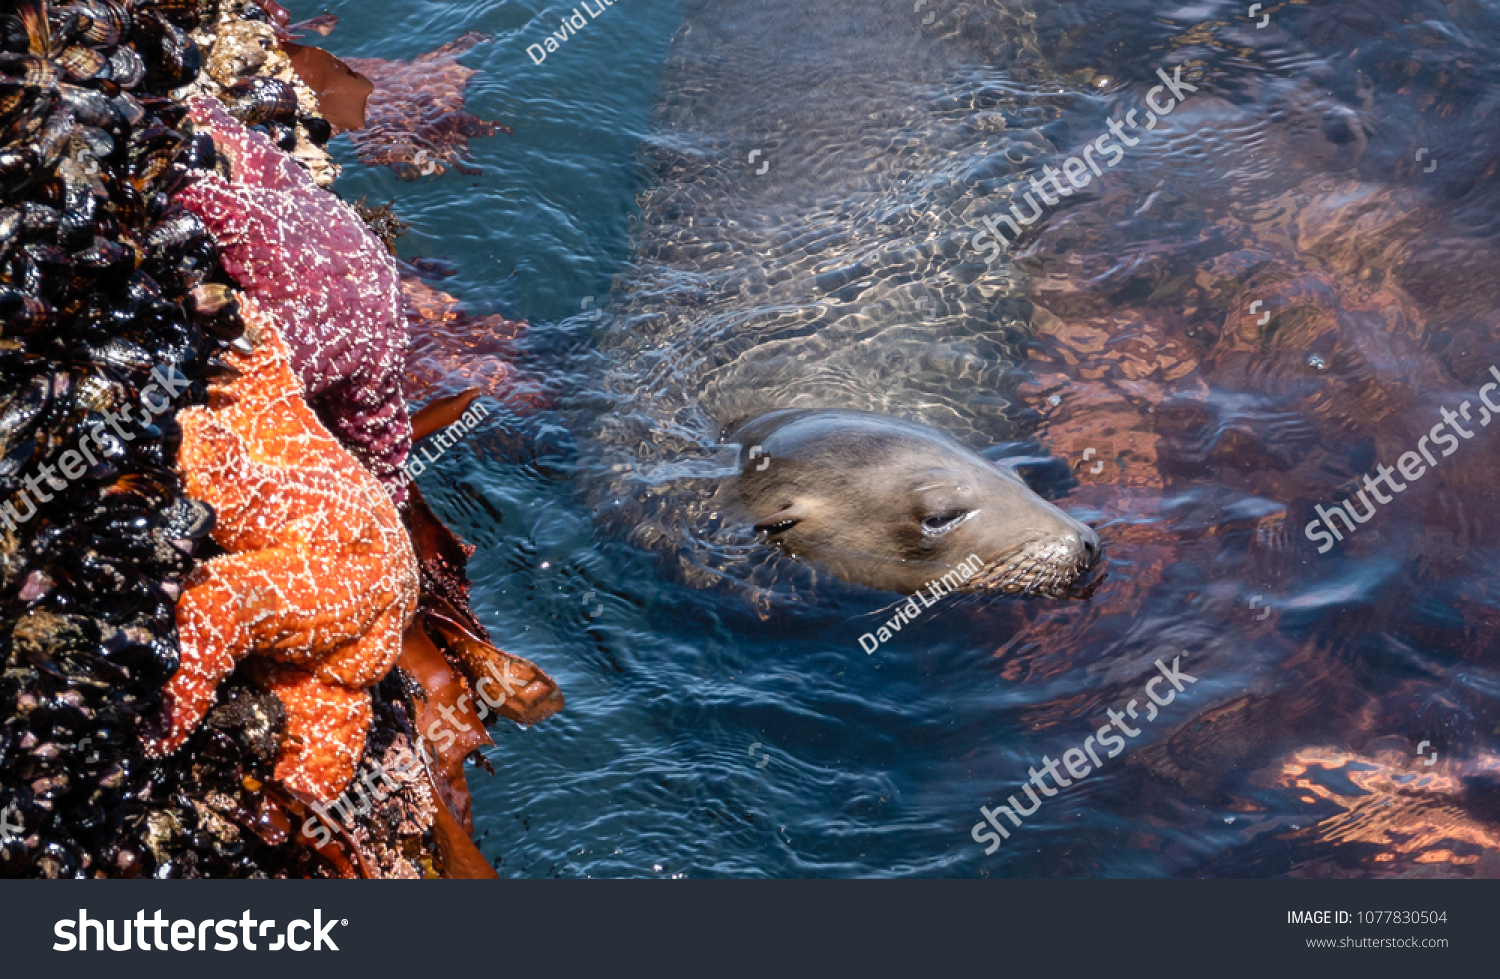 A Sea Lion swims in a narrow channel of rocks lined by mussels and star fish (sea stars) along the Monterey Bay of the central coast of California.